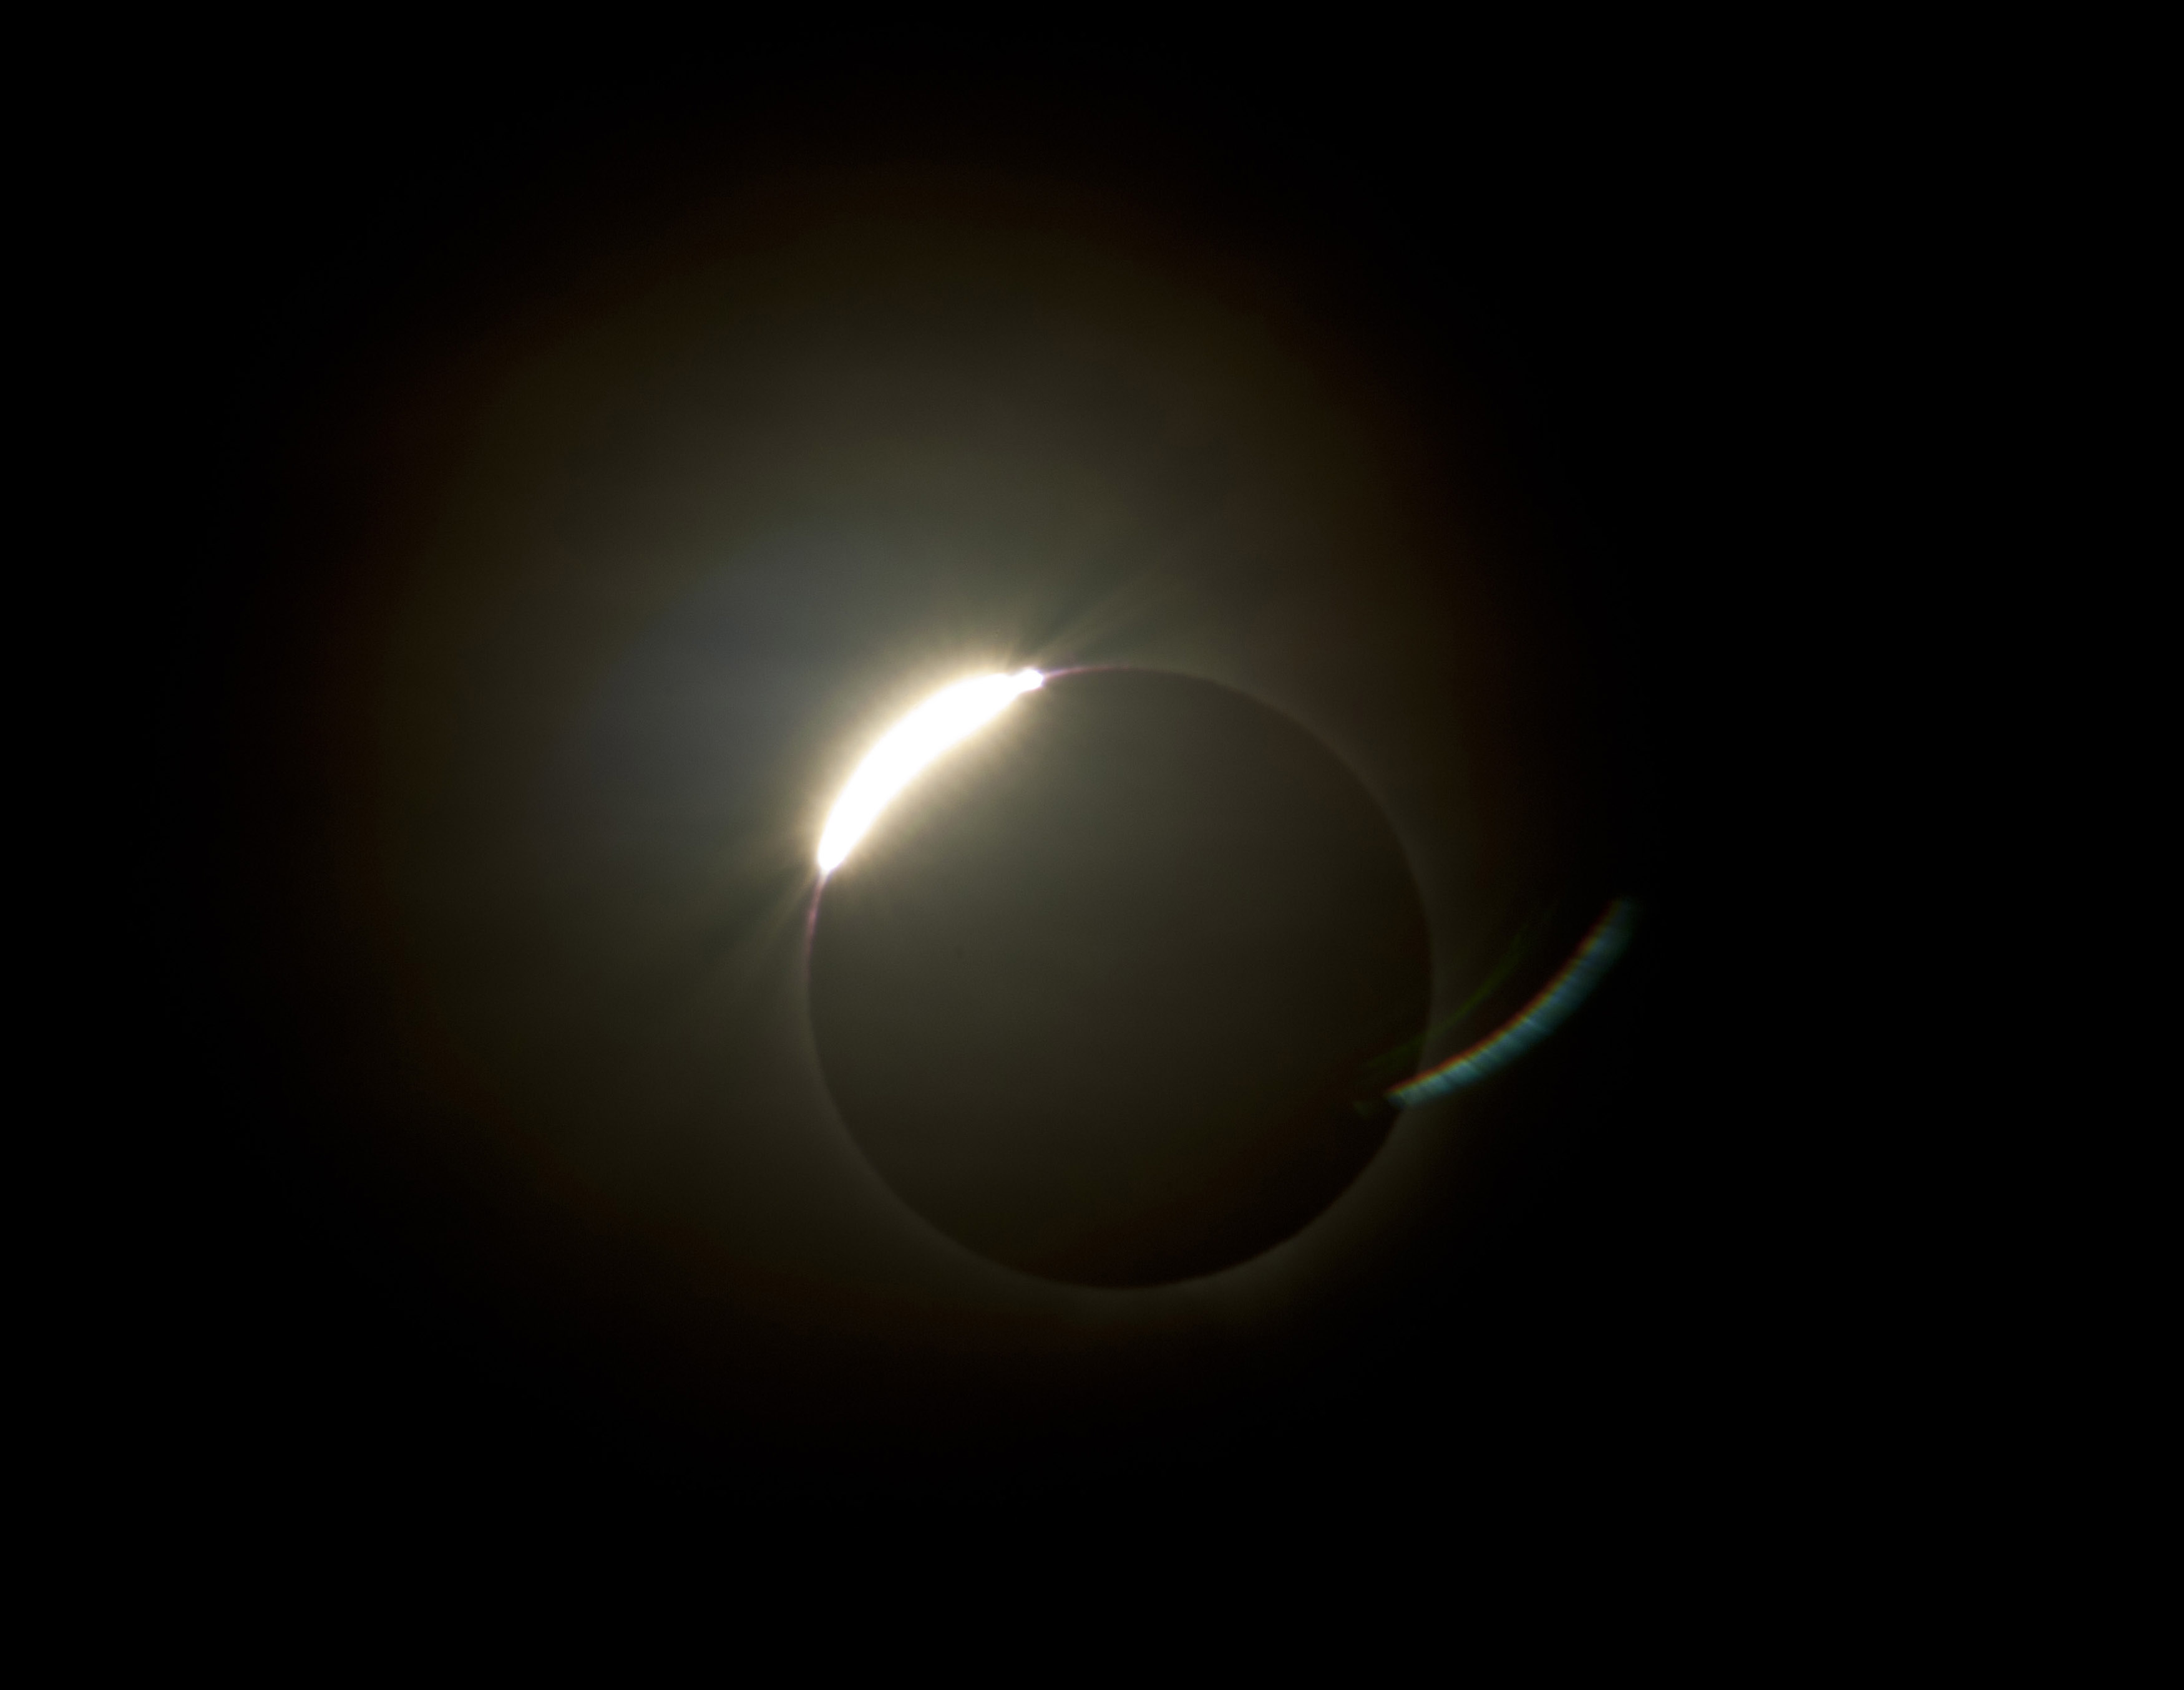 The sun emerging from behind the moon during a total solar eclipse with a ring of illumnated corona still visible